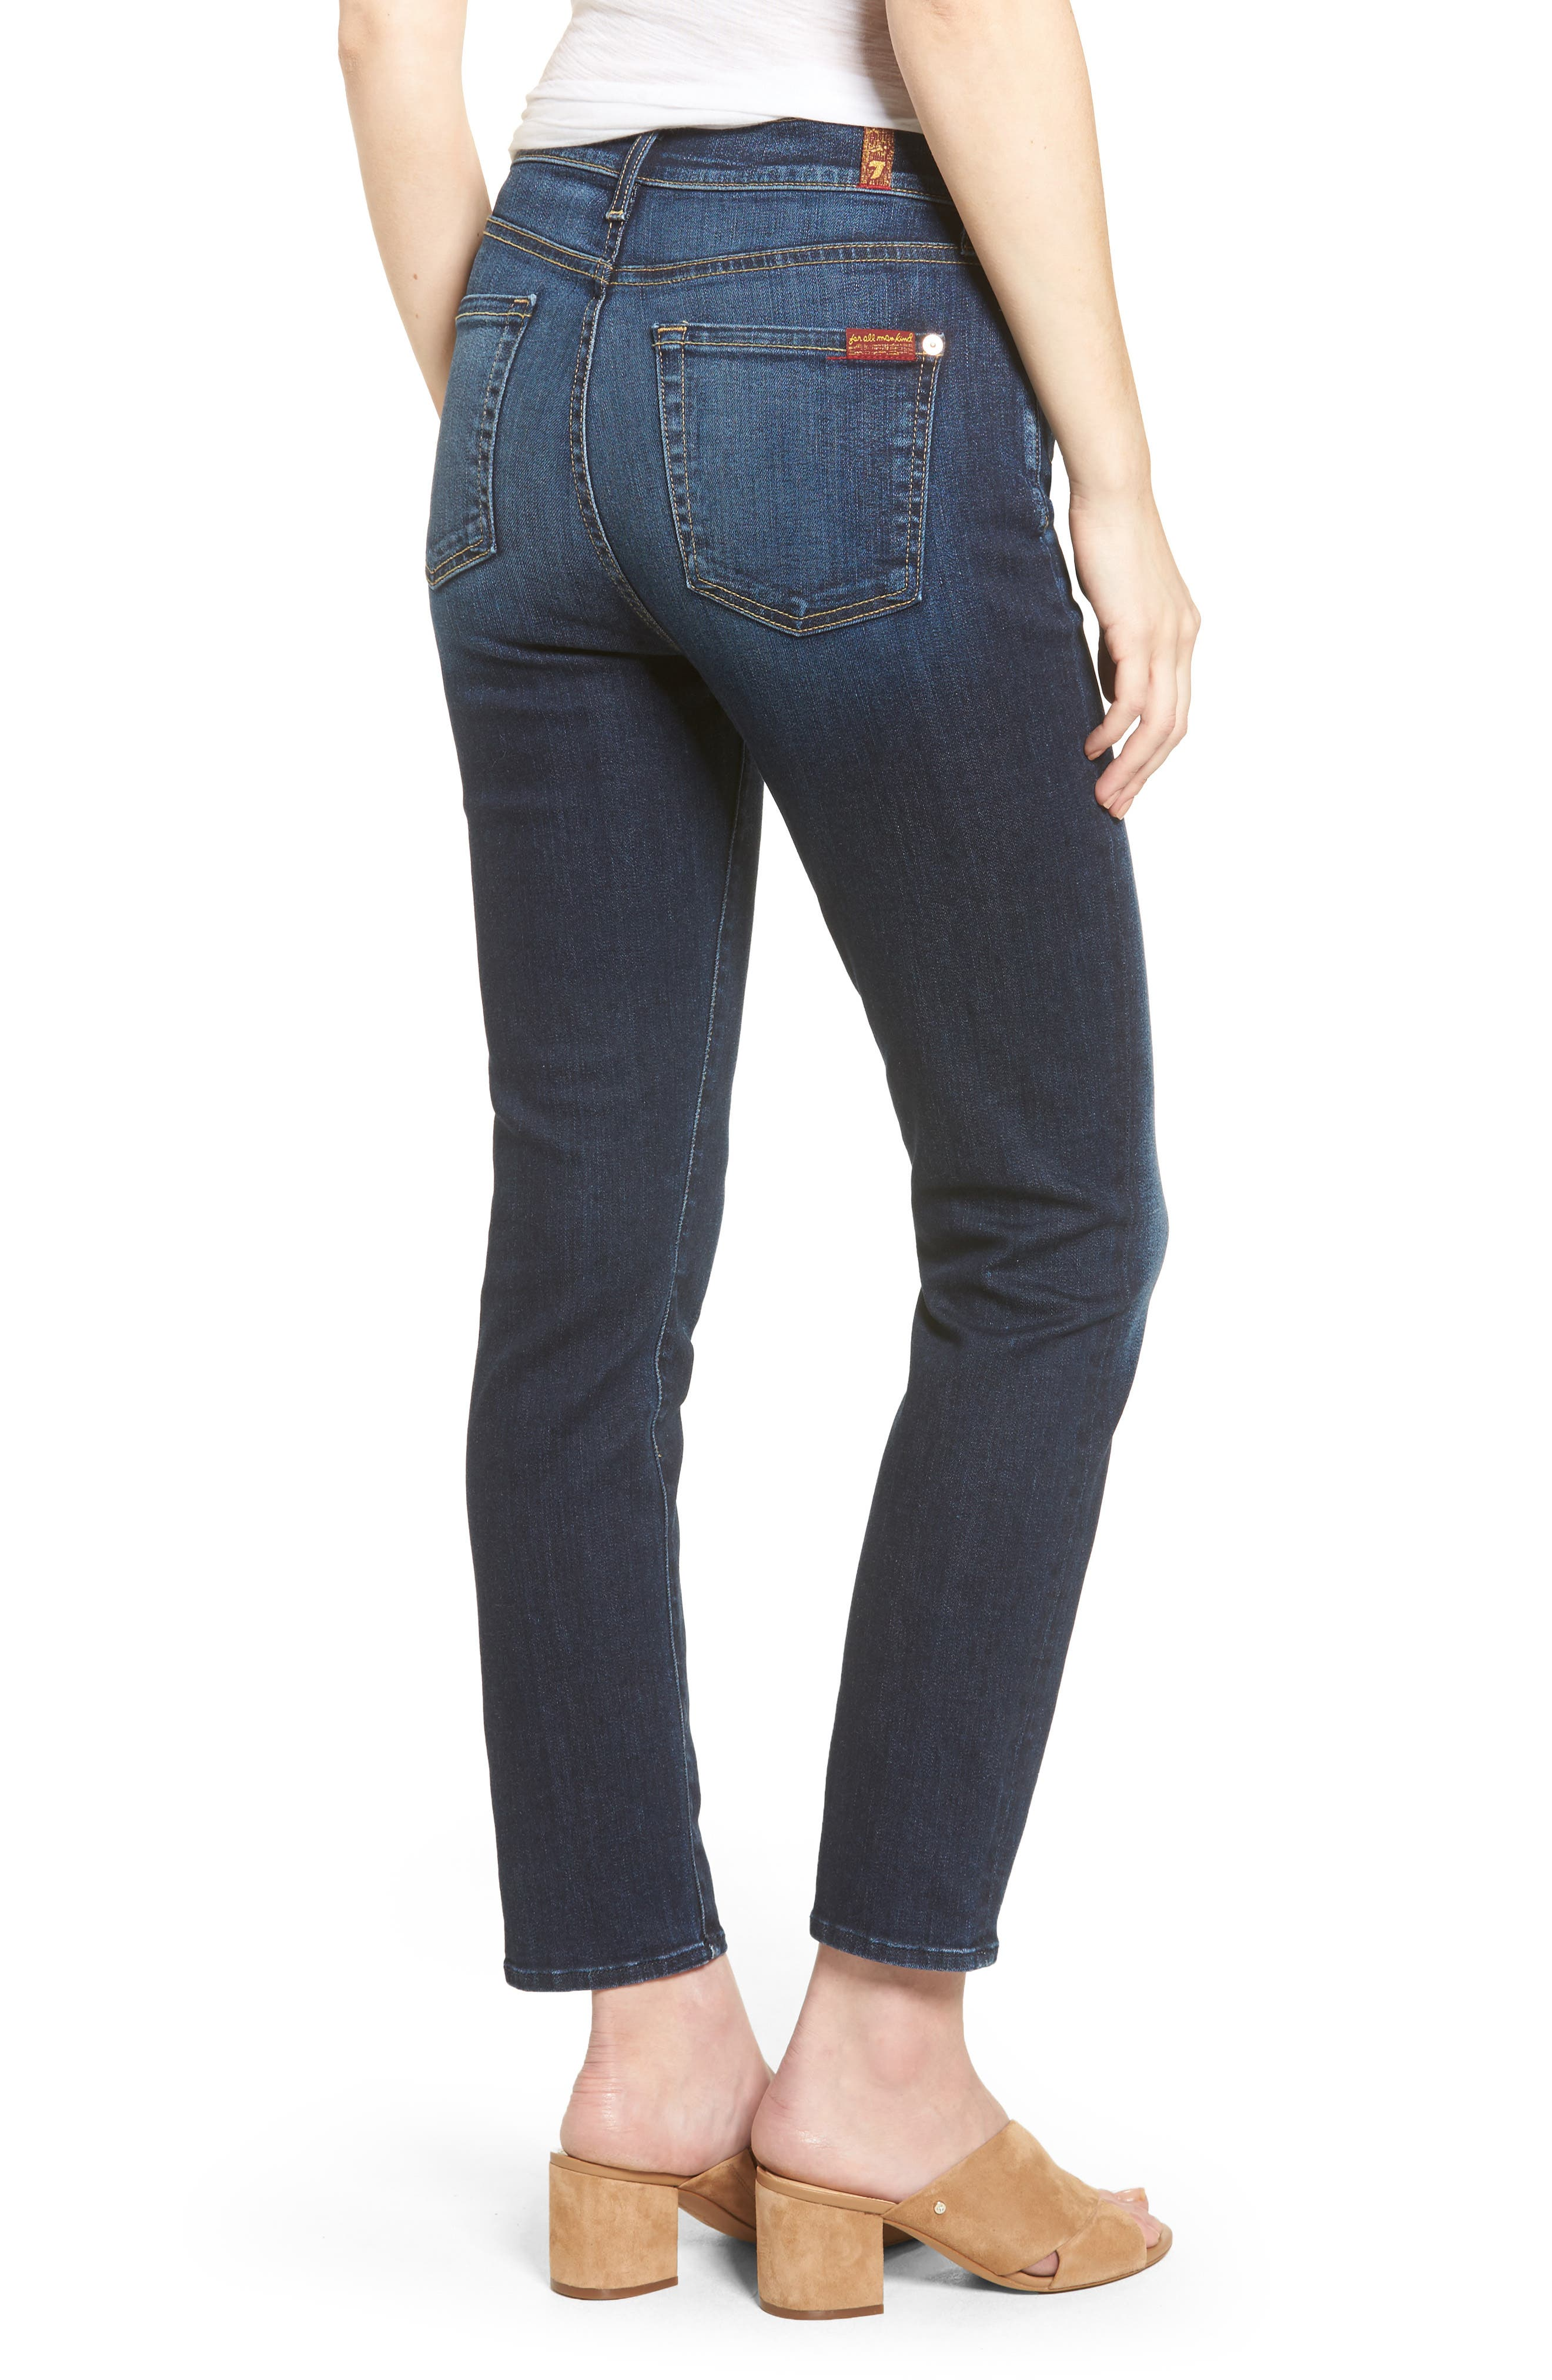 Alternate Image 2  - Seven7 Roxanne High Waist Ankle Jeans (Aggressive Madison Ave)